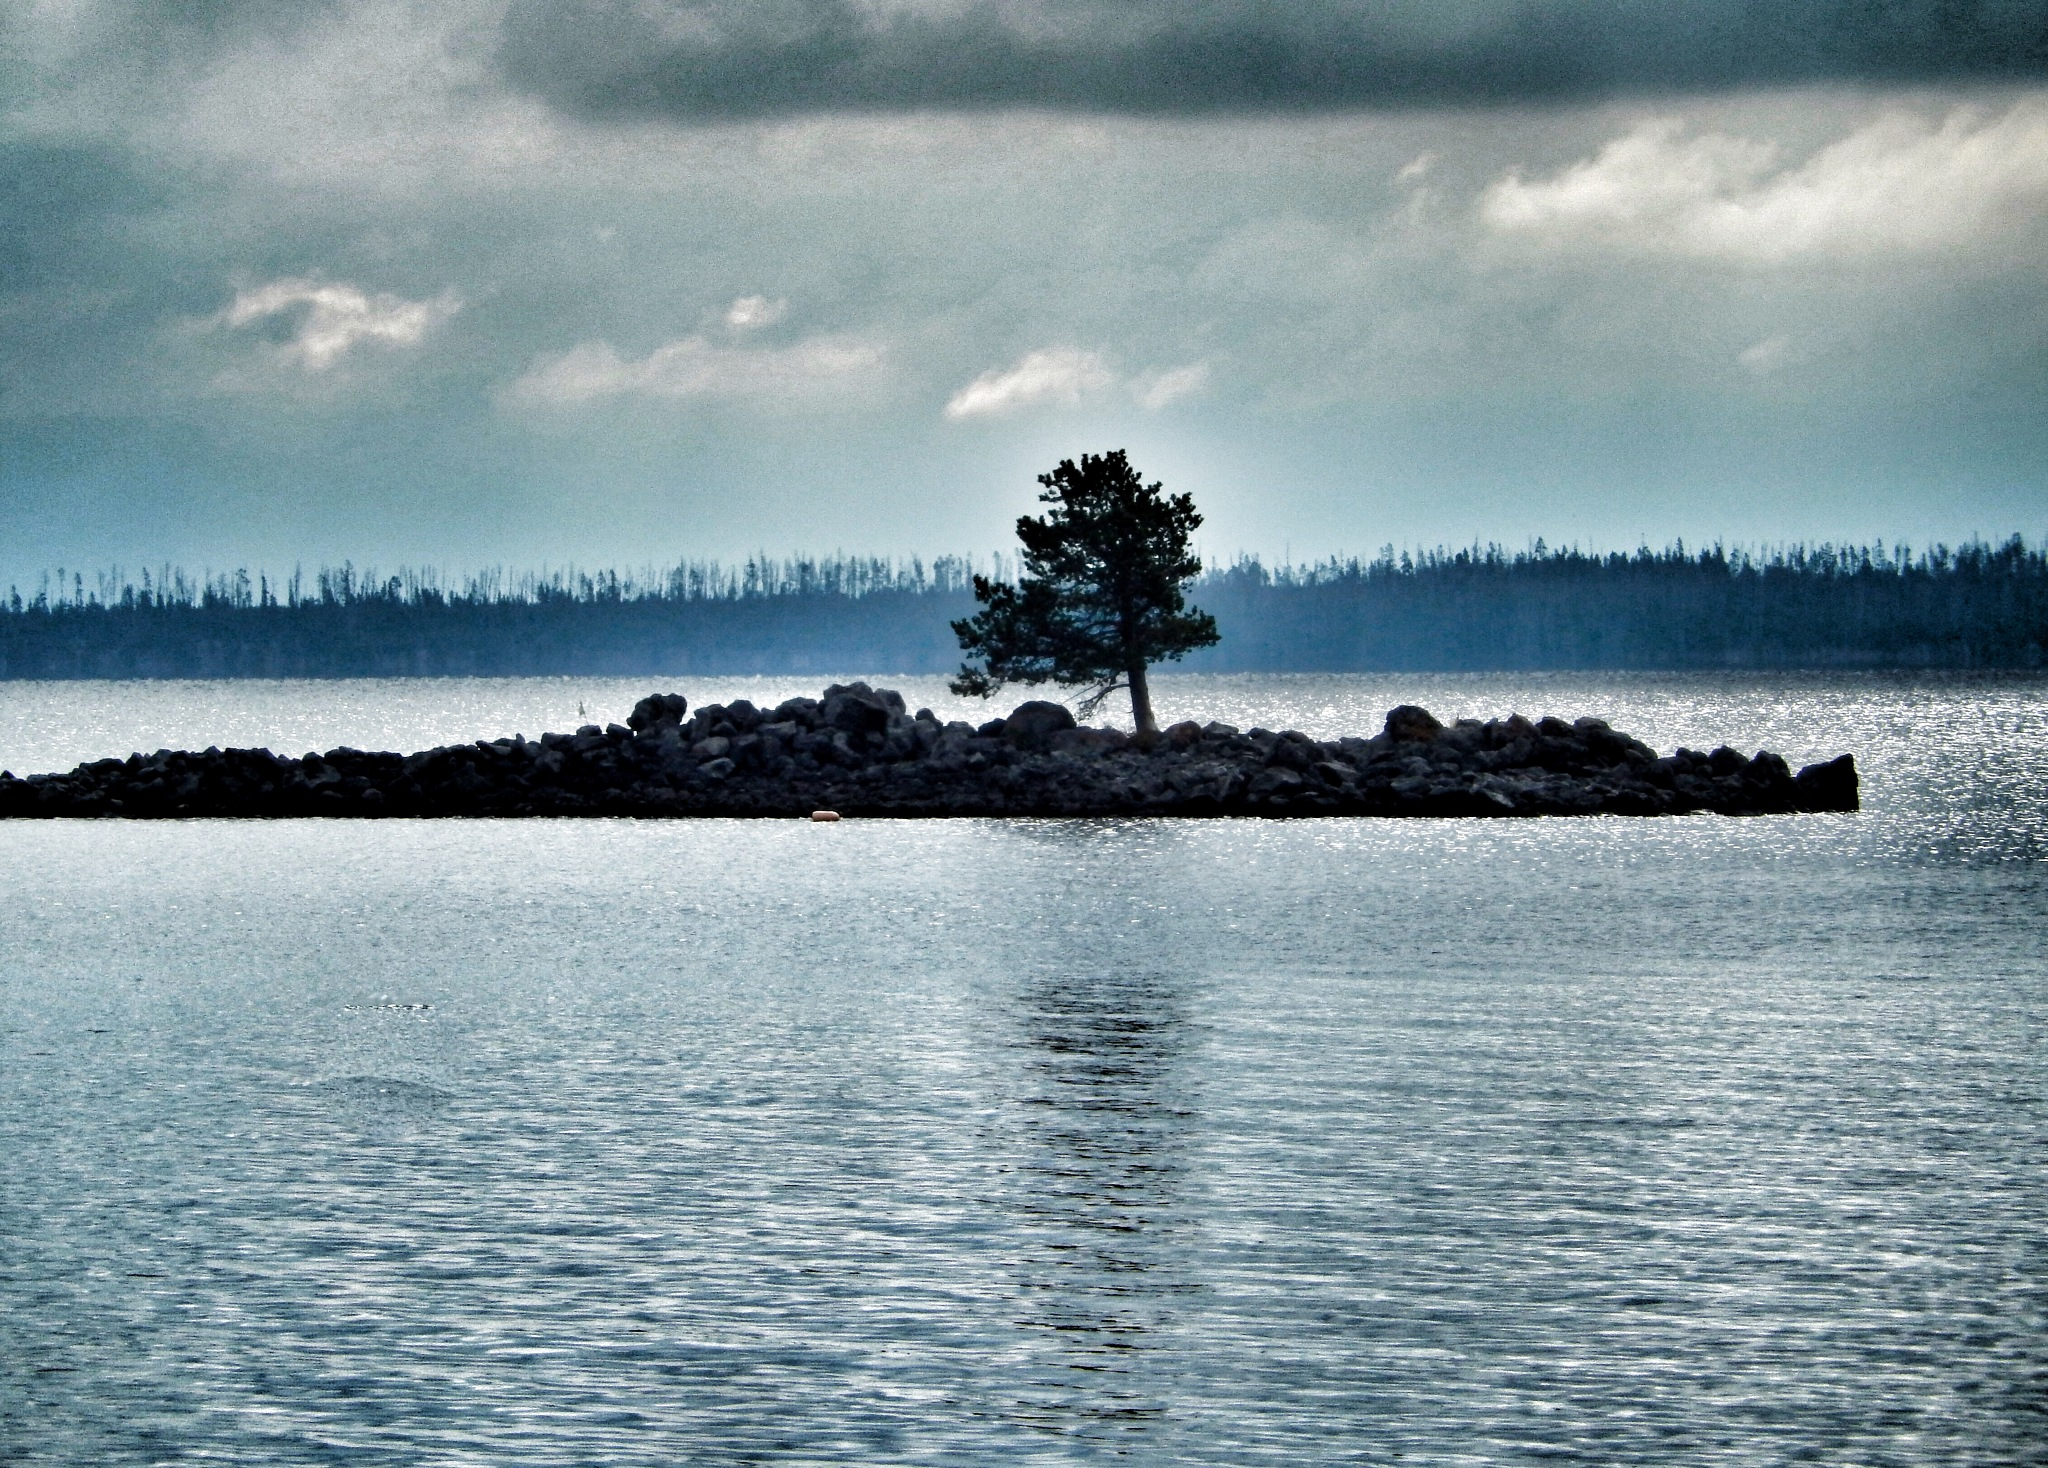 The lonesome tree (2) by Jackie06